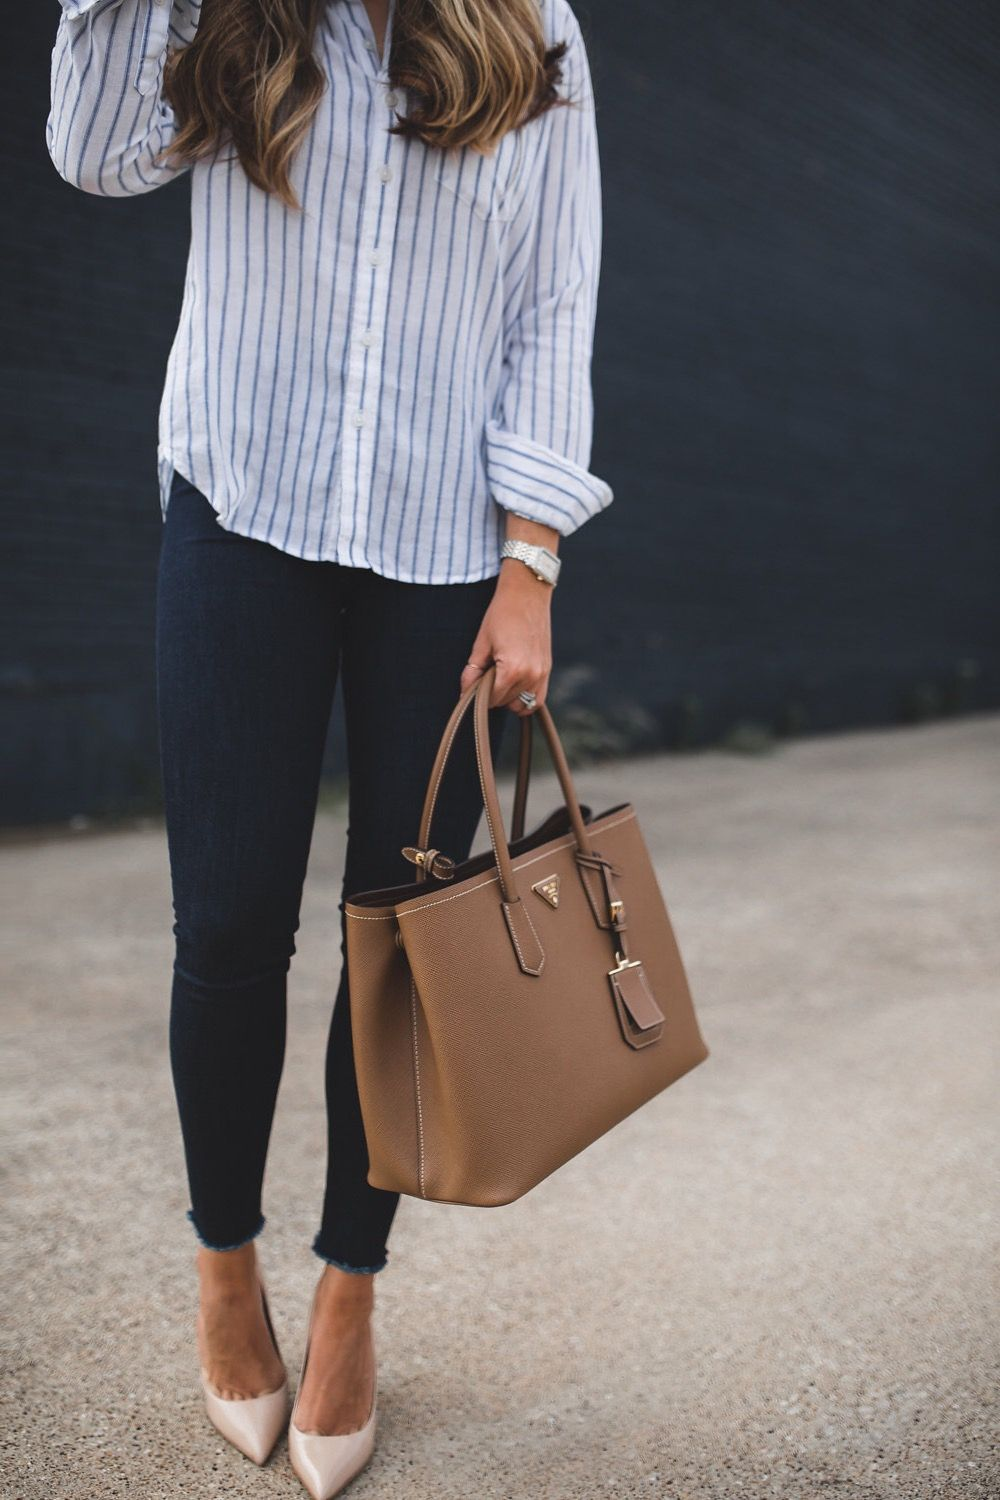 Photo of Striped Button Down & Frayed Denim | The Teacher Diva: a Dallas Fashion Blog featuring Beauty & Lifestyle